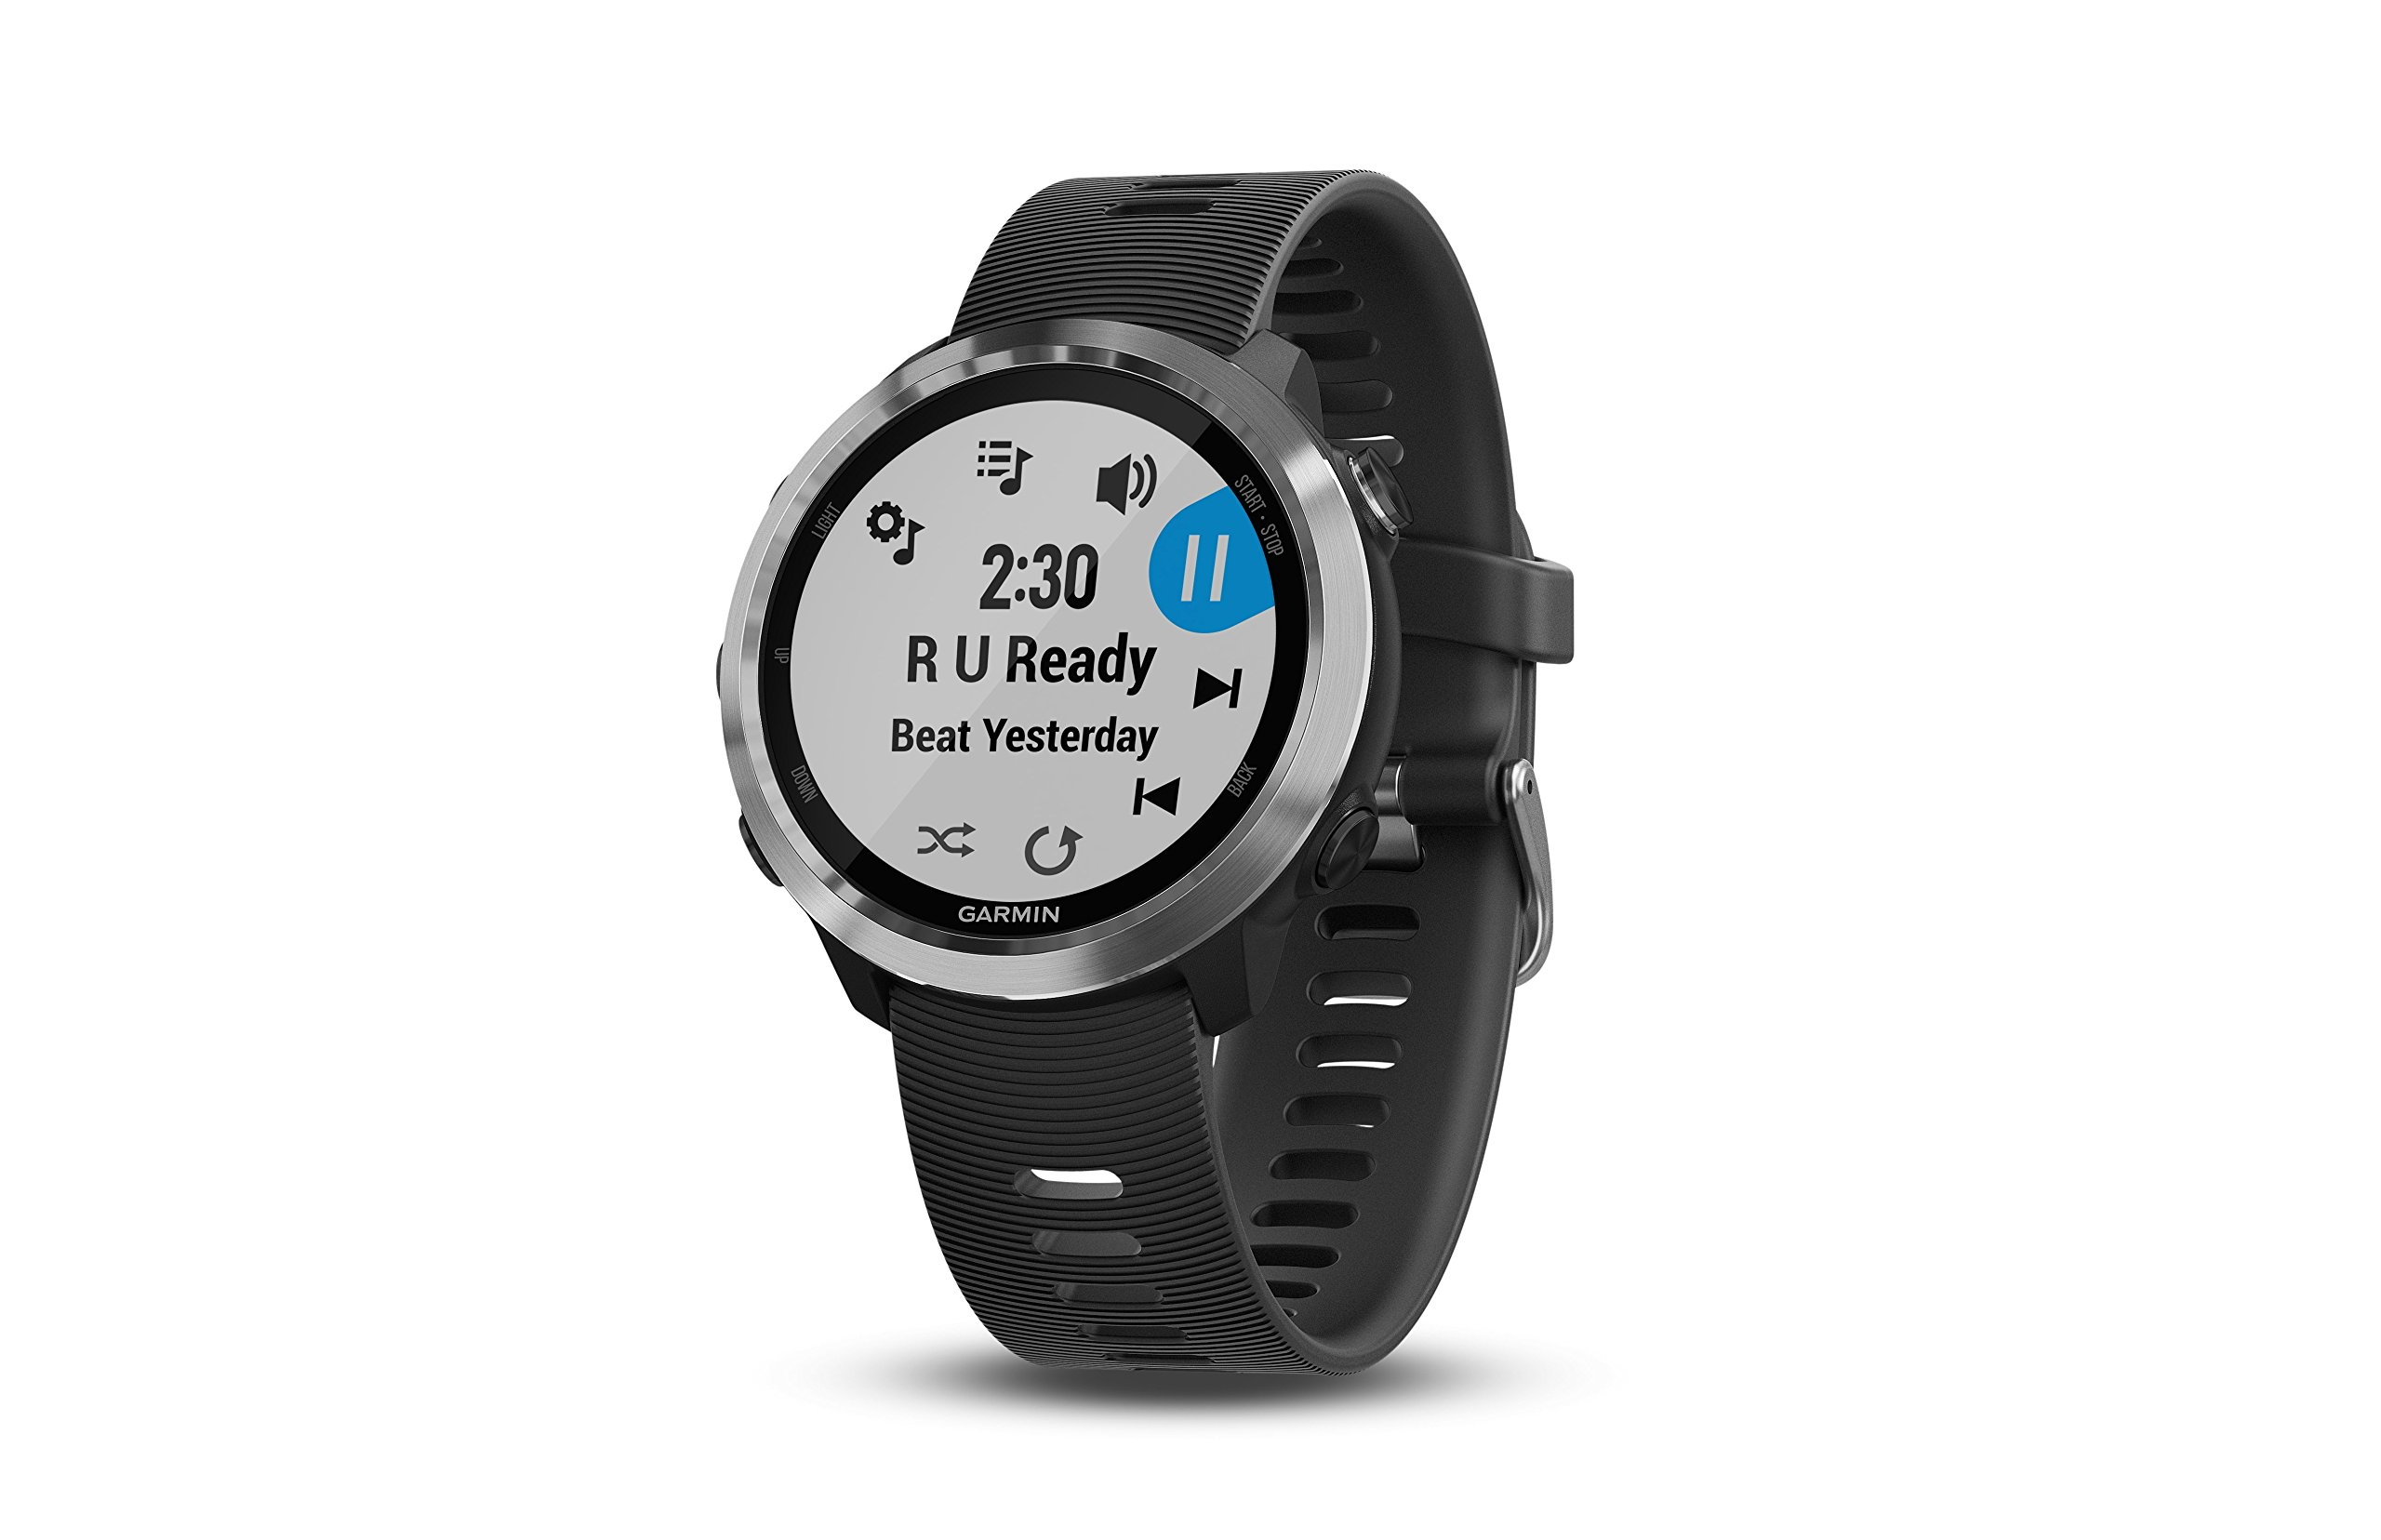 Garmin Forerunner 645 Music, GPS Running Watch with Pay Contactless Payments, Wrist-Based Heart Rate and Music, Black by Garmin